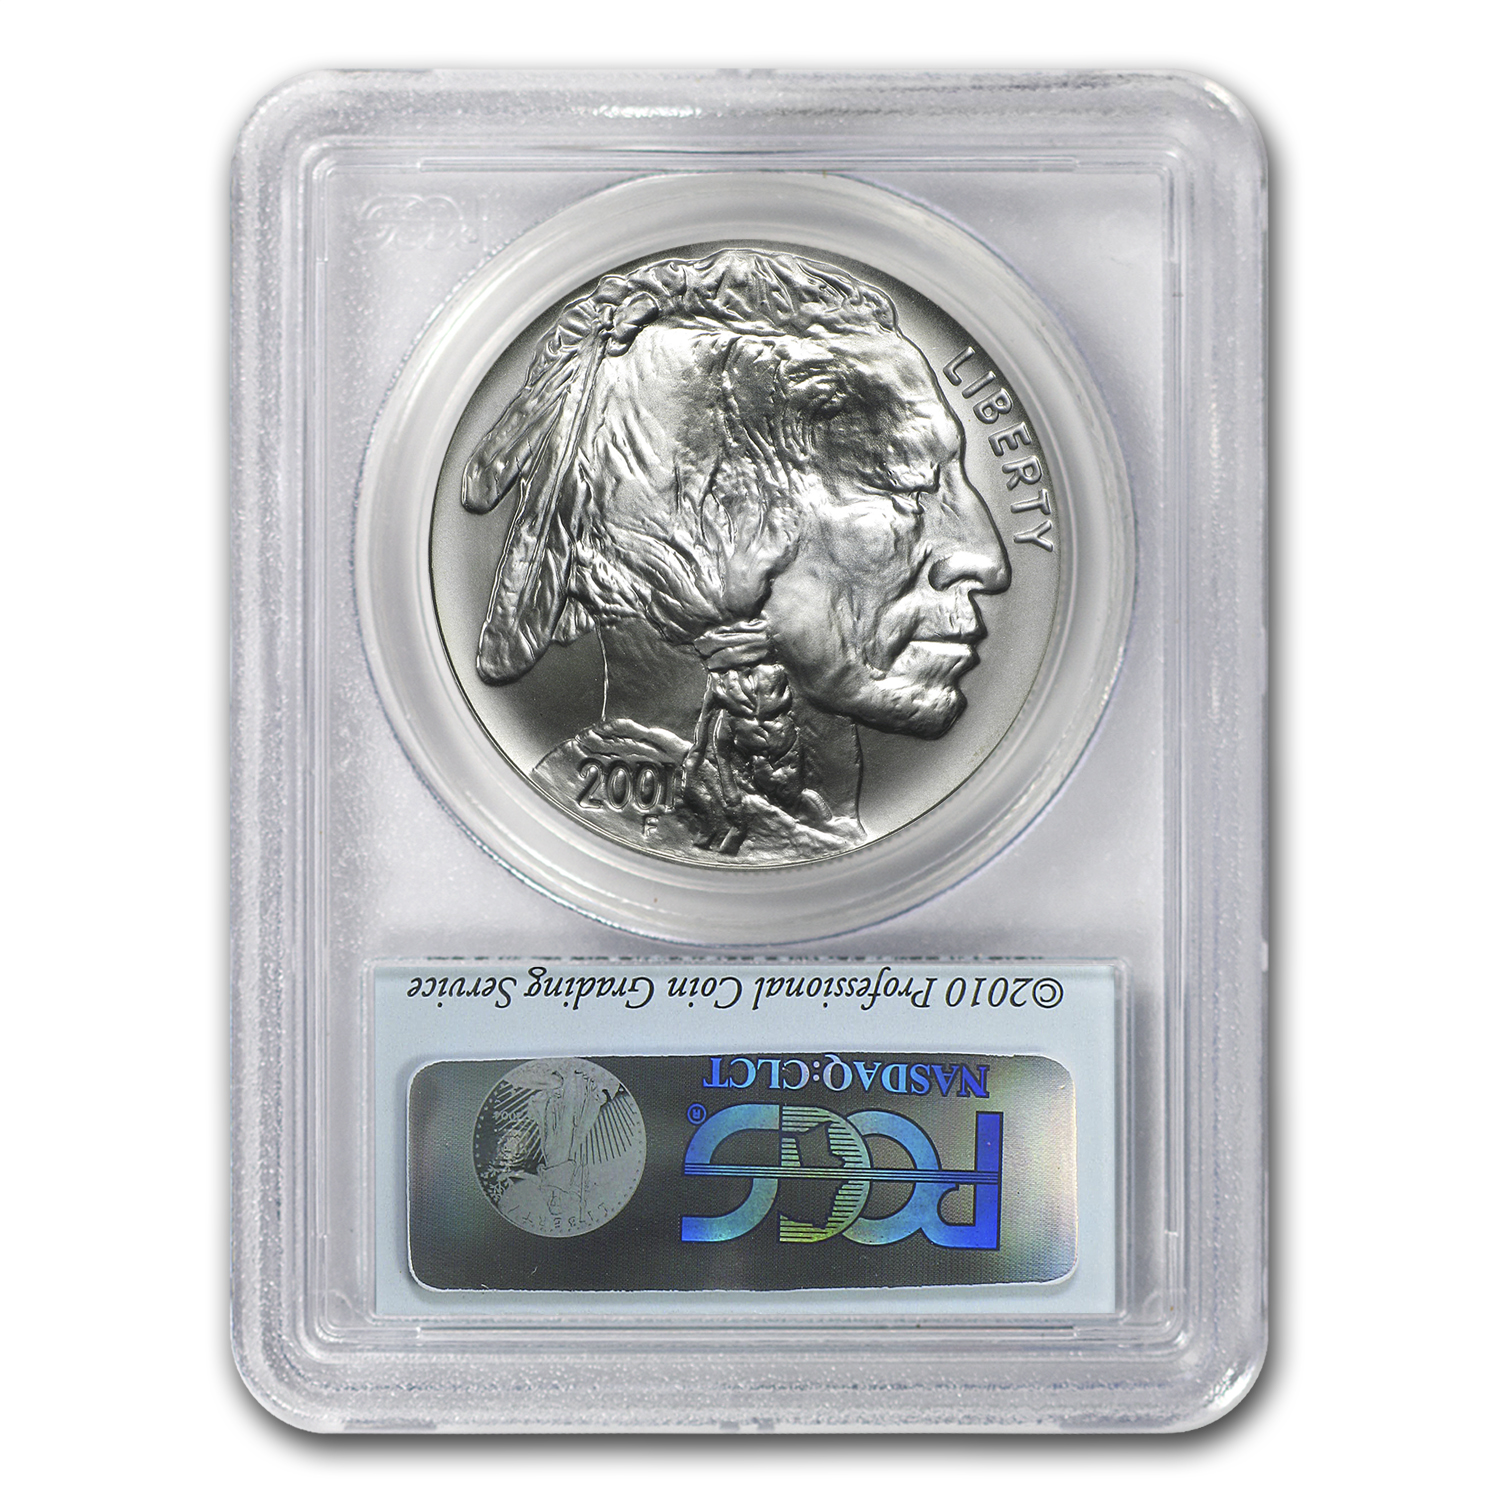 2001-D Buffalo - Black Diamond $1 Silver Commemorative MS-69 PCGS